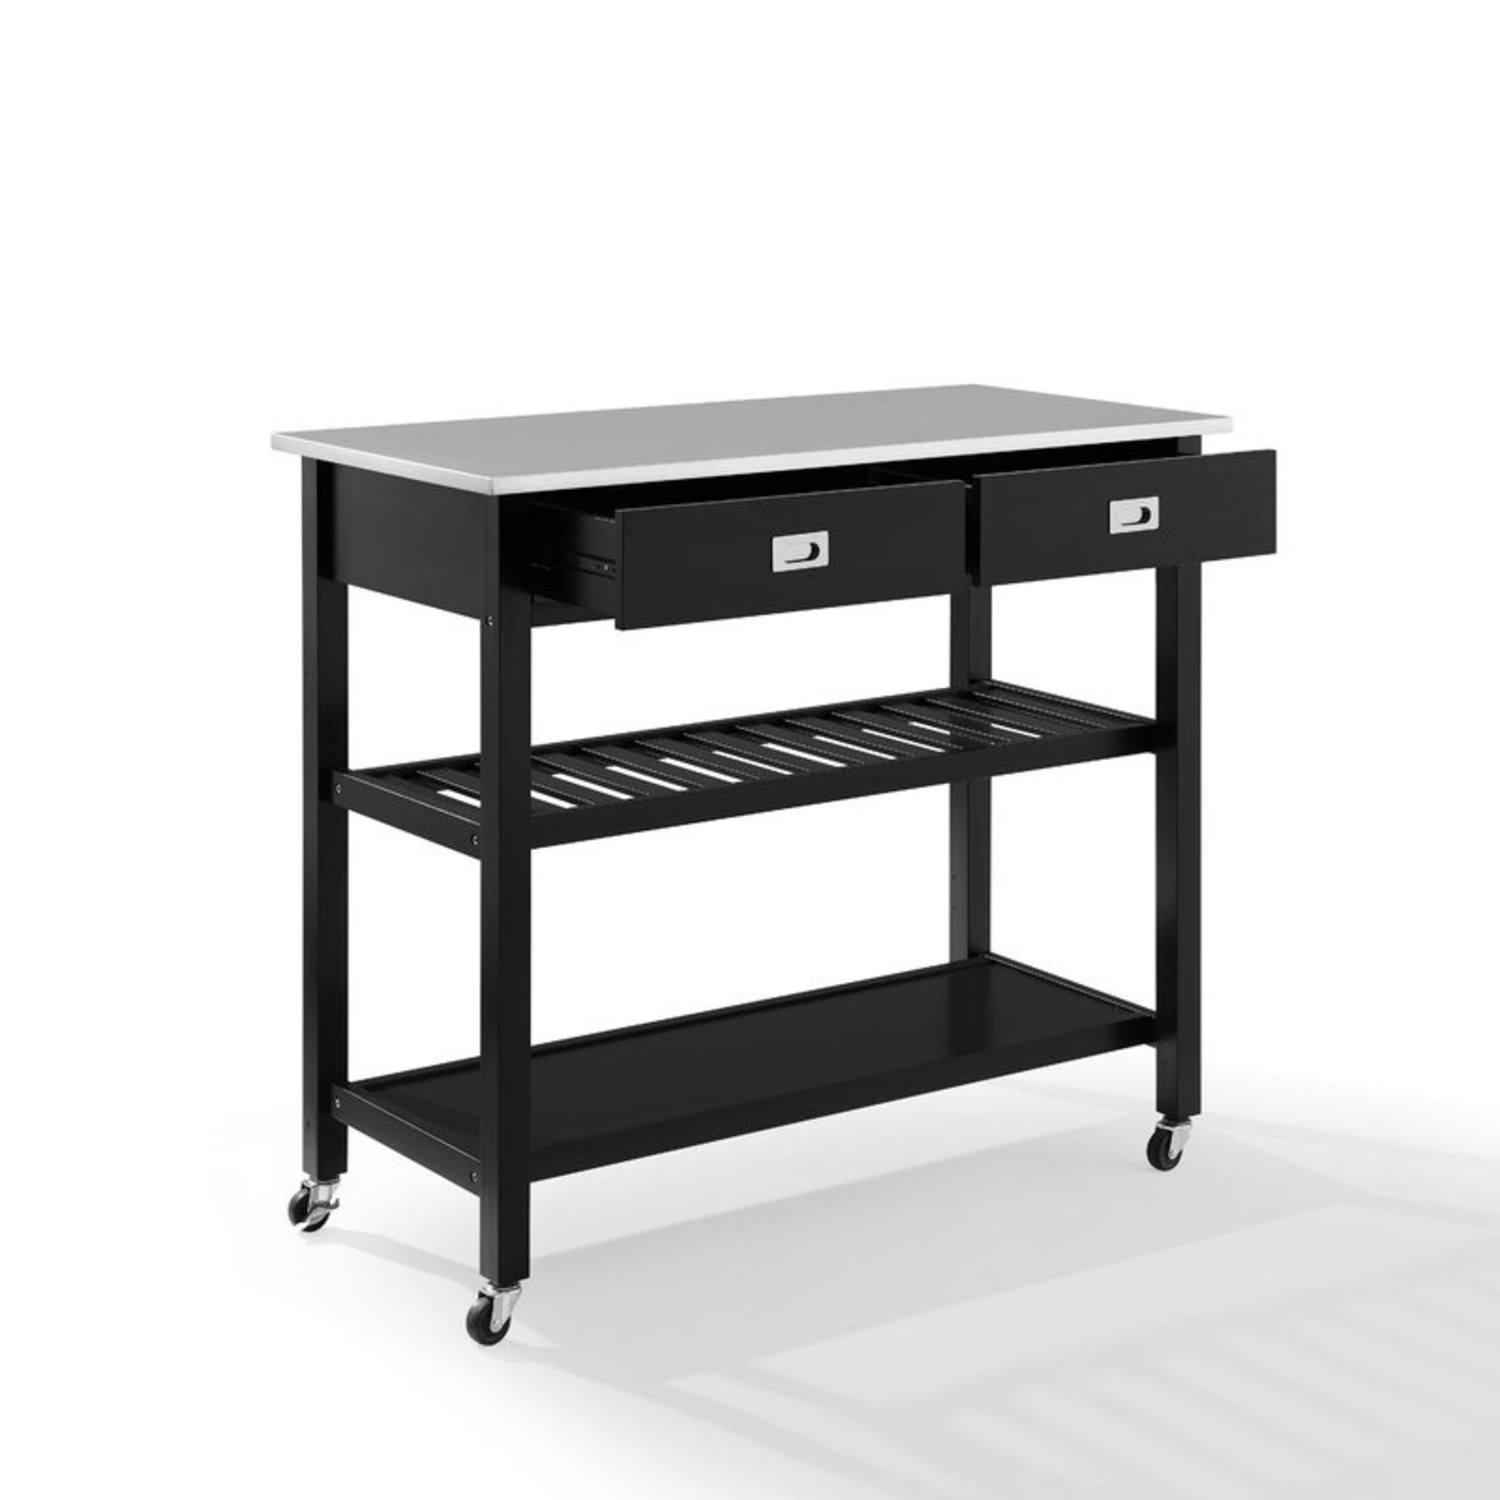 Wayfair Kitchen Island with Stainless Steel Top - image-3